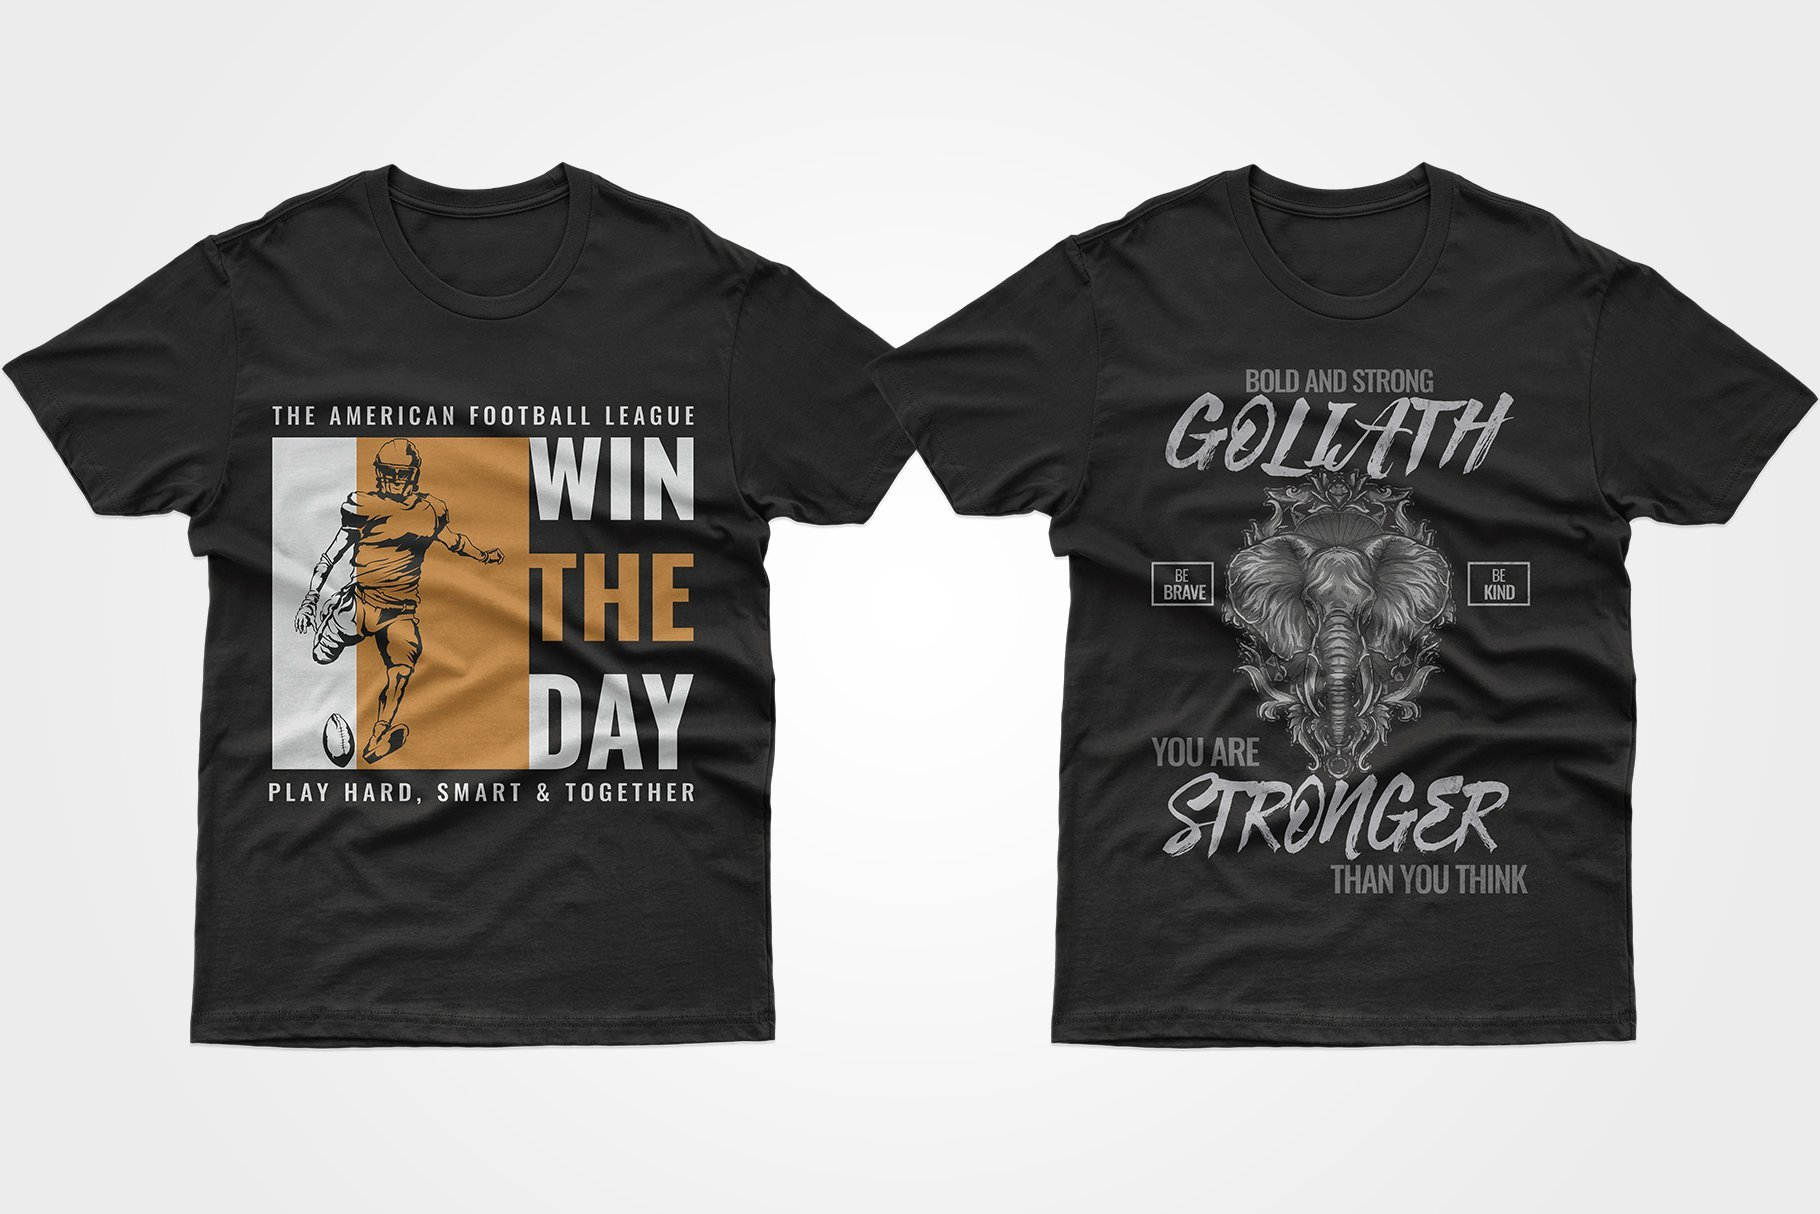 Two black jerseys - one with an elephant and a motivating phrase, the other with an American football player.